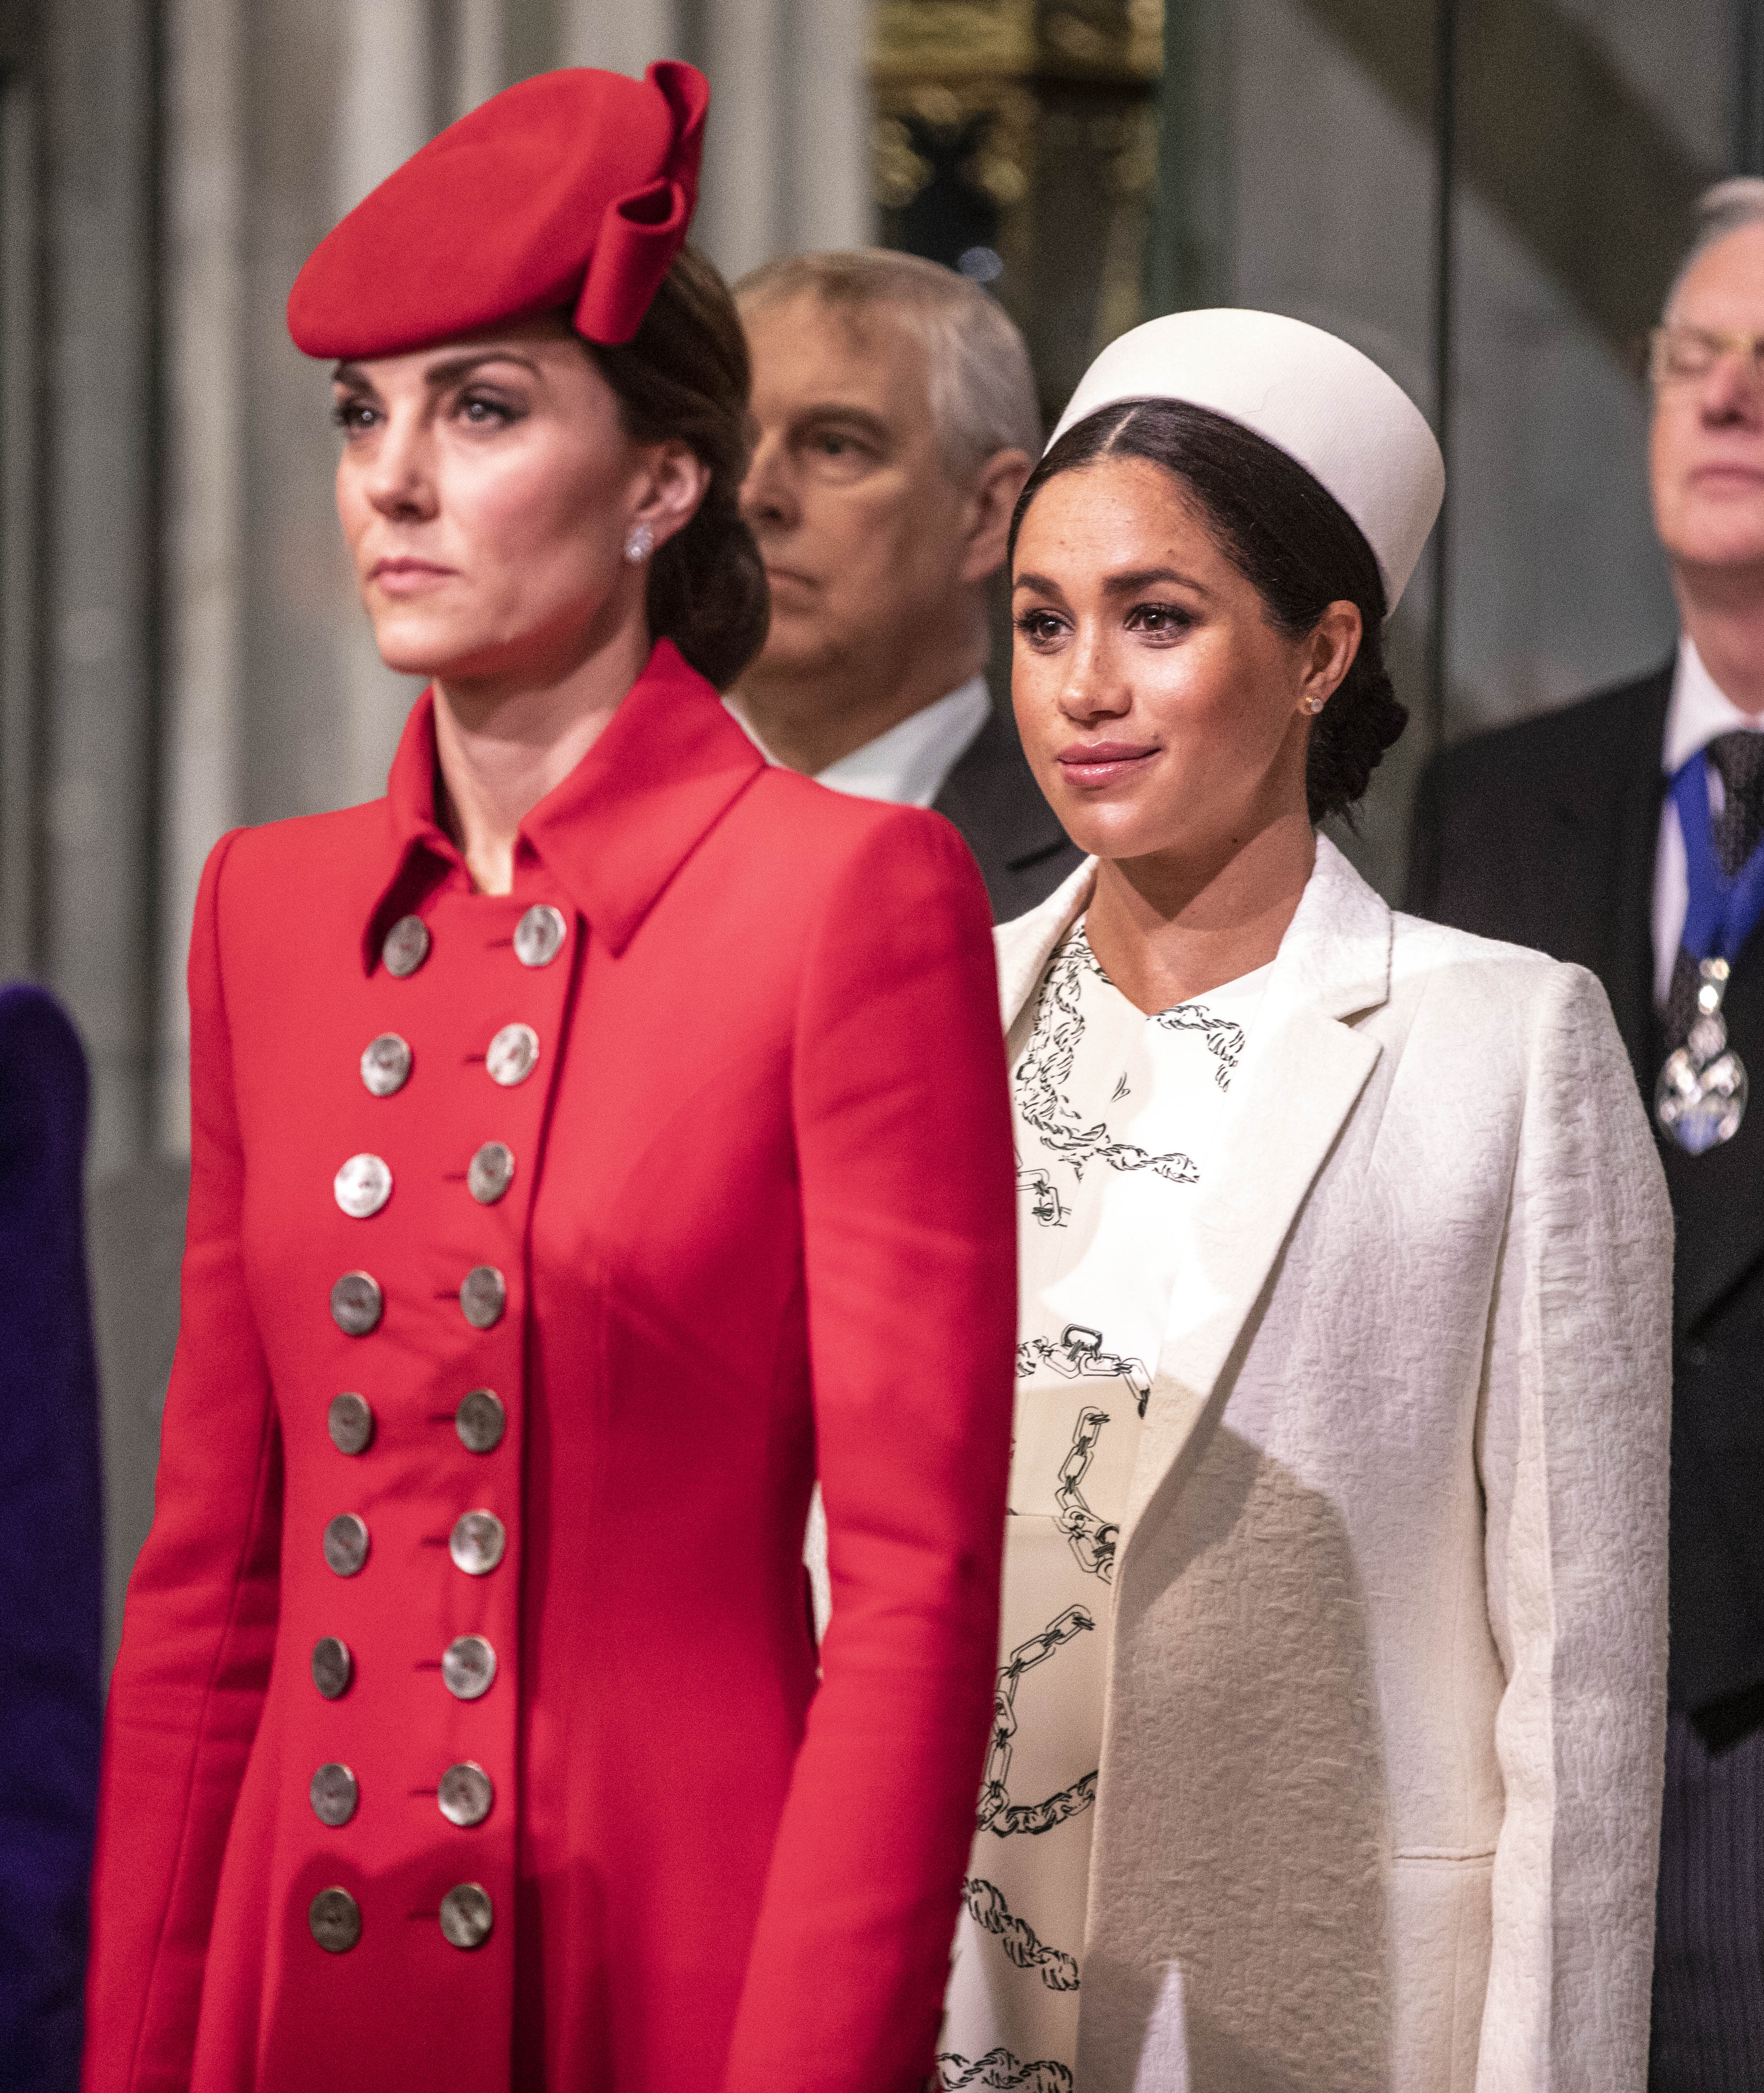 Catherine, The Duchess of Cambridge stands with Meghan, Duchess of Sussex at Westminster Abbey for a Commonwealth day service on March 11, 2019 in London, England. Commonwealth Day has a special significance this year, as 2019 marks the 70th anniversary of the modern Commonwealth, with old ties and new links enabling cooperation towards social, political and economic development which is both inclusive and sustainable. The Commonwealth represents a global network of 53 countries and almost 2.4 billion people, a third of the worlds population, of whom 60 percent are under 30 years old. Each year the Commonwealth adopts a theme upon which the Service is based. This years theme A Connected Commonwealth speaks of the practical value and global engagement made possible as a result of cooperation between the culturally diverse and widely dispersed family of nations, who work together in friendship and goodwill. The Commonwealths governments, institutions and people connect at many levels, including through parliaments and universities. They work together to protect the natural environment and the ocean which connects many Commonwealth nations, shore to shore. Cooperation on trade encourages inclusive economic empowerment for all people - particularly women, youth and marginalised communities. The Commonwealths friendly sporting rivalry encourages people to participate in sport for development and peace. (Photo by Richard Pohle - WPA Pool/Getty Images)